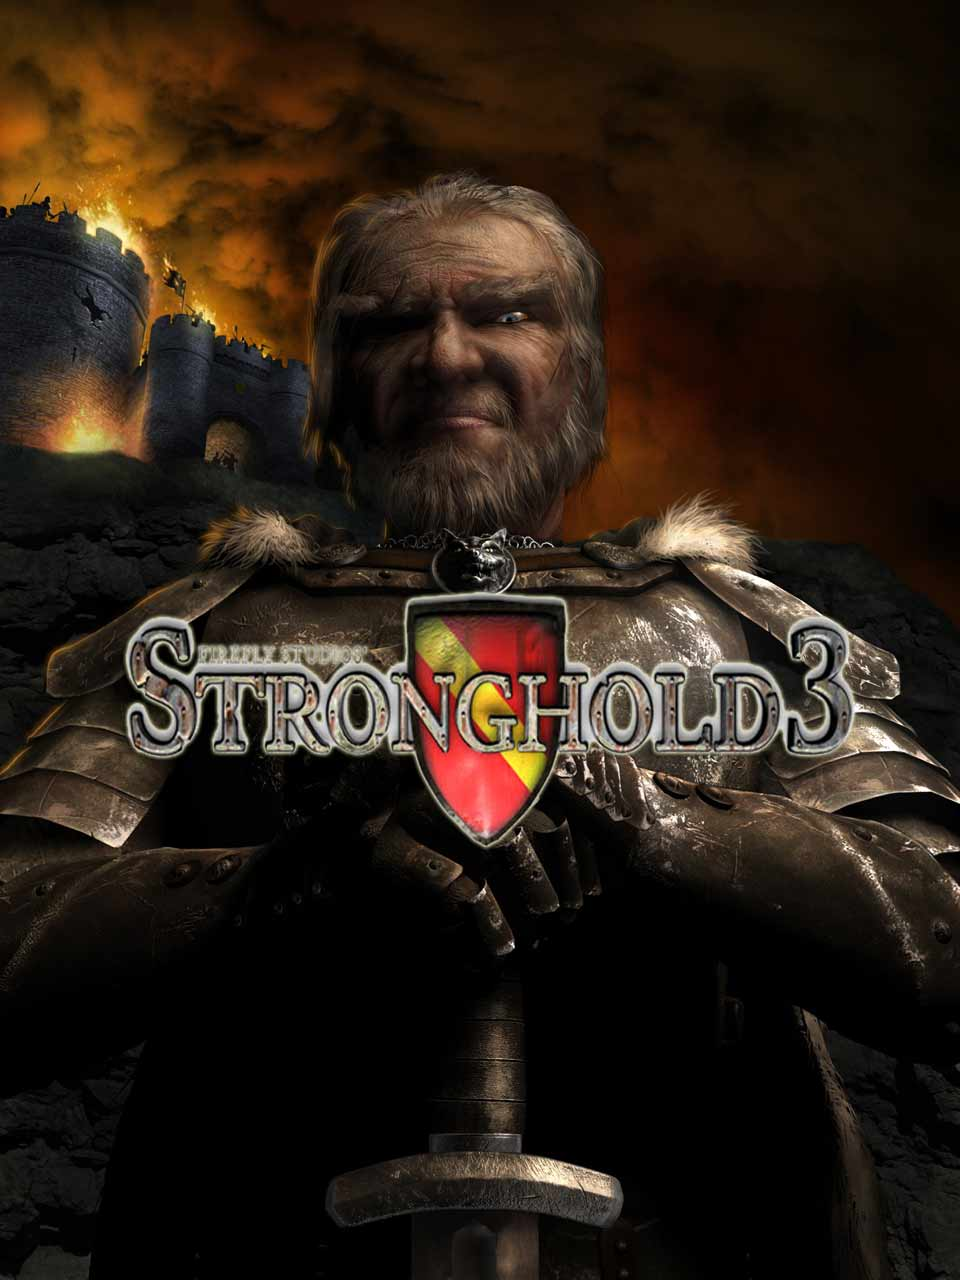 Stronghold3-img-1